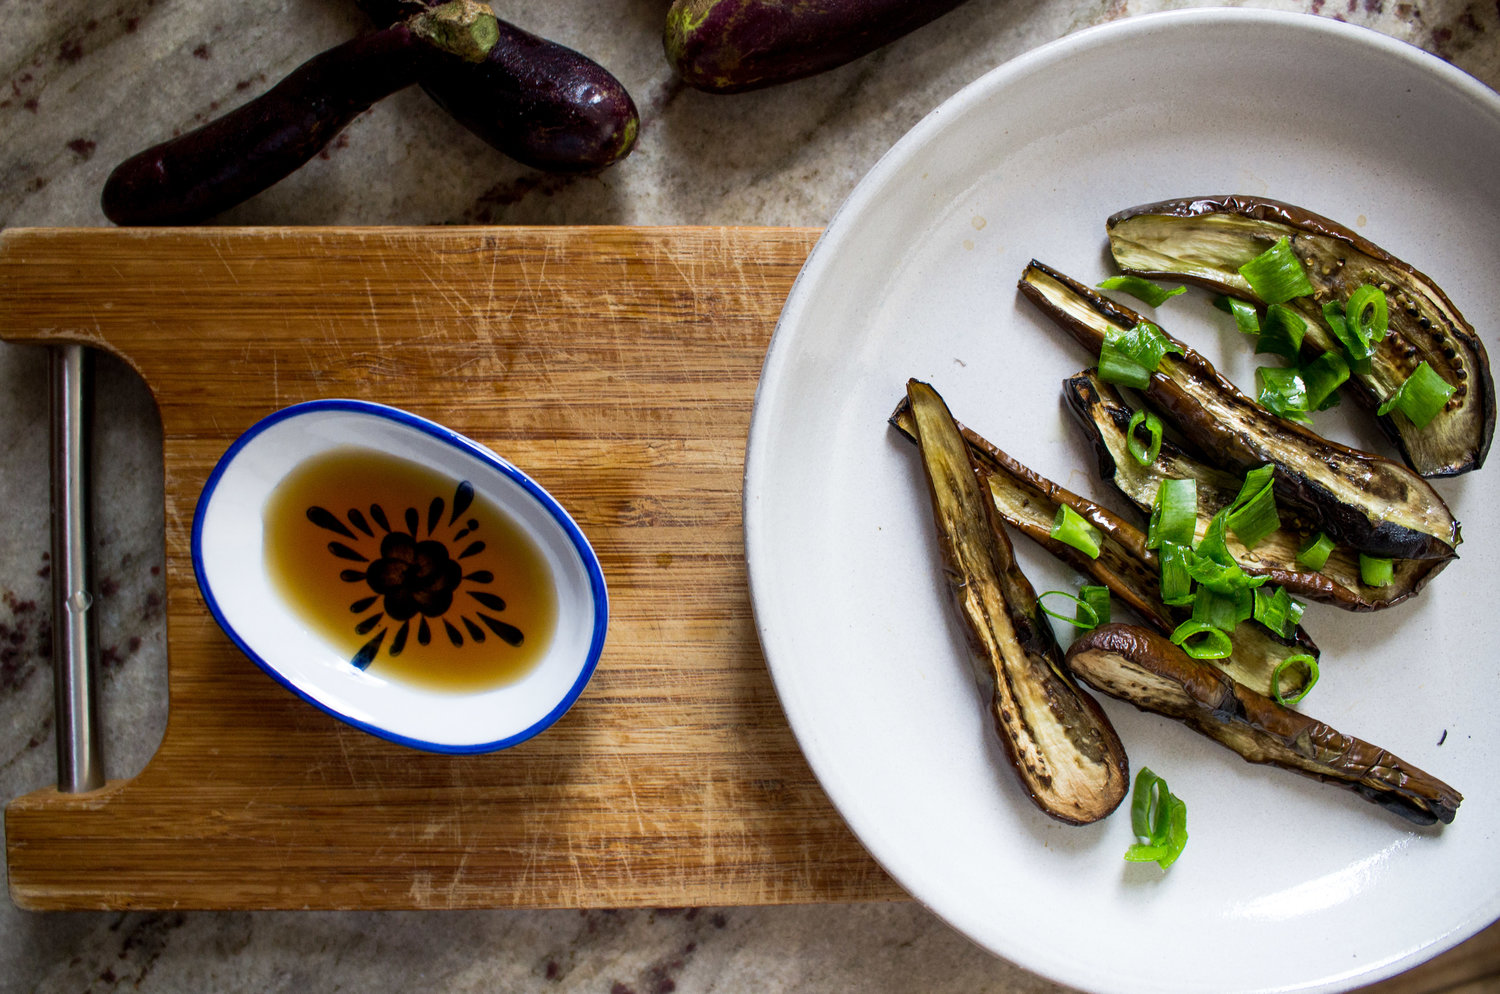 Roasted Eggplant with Fish Sauce